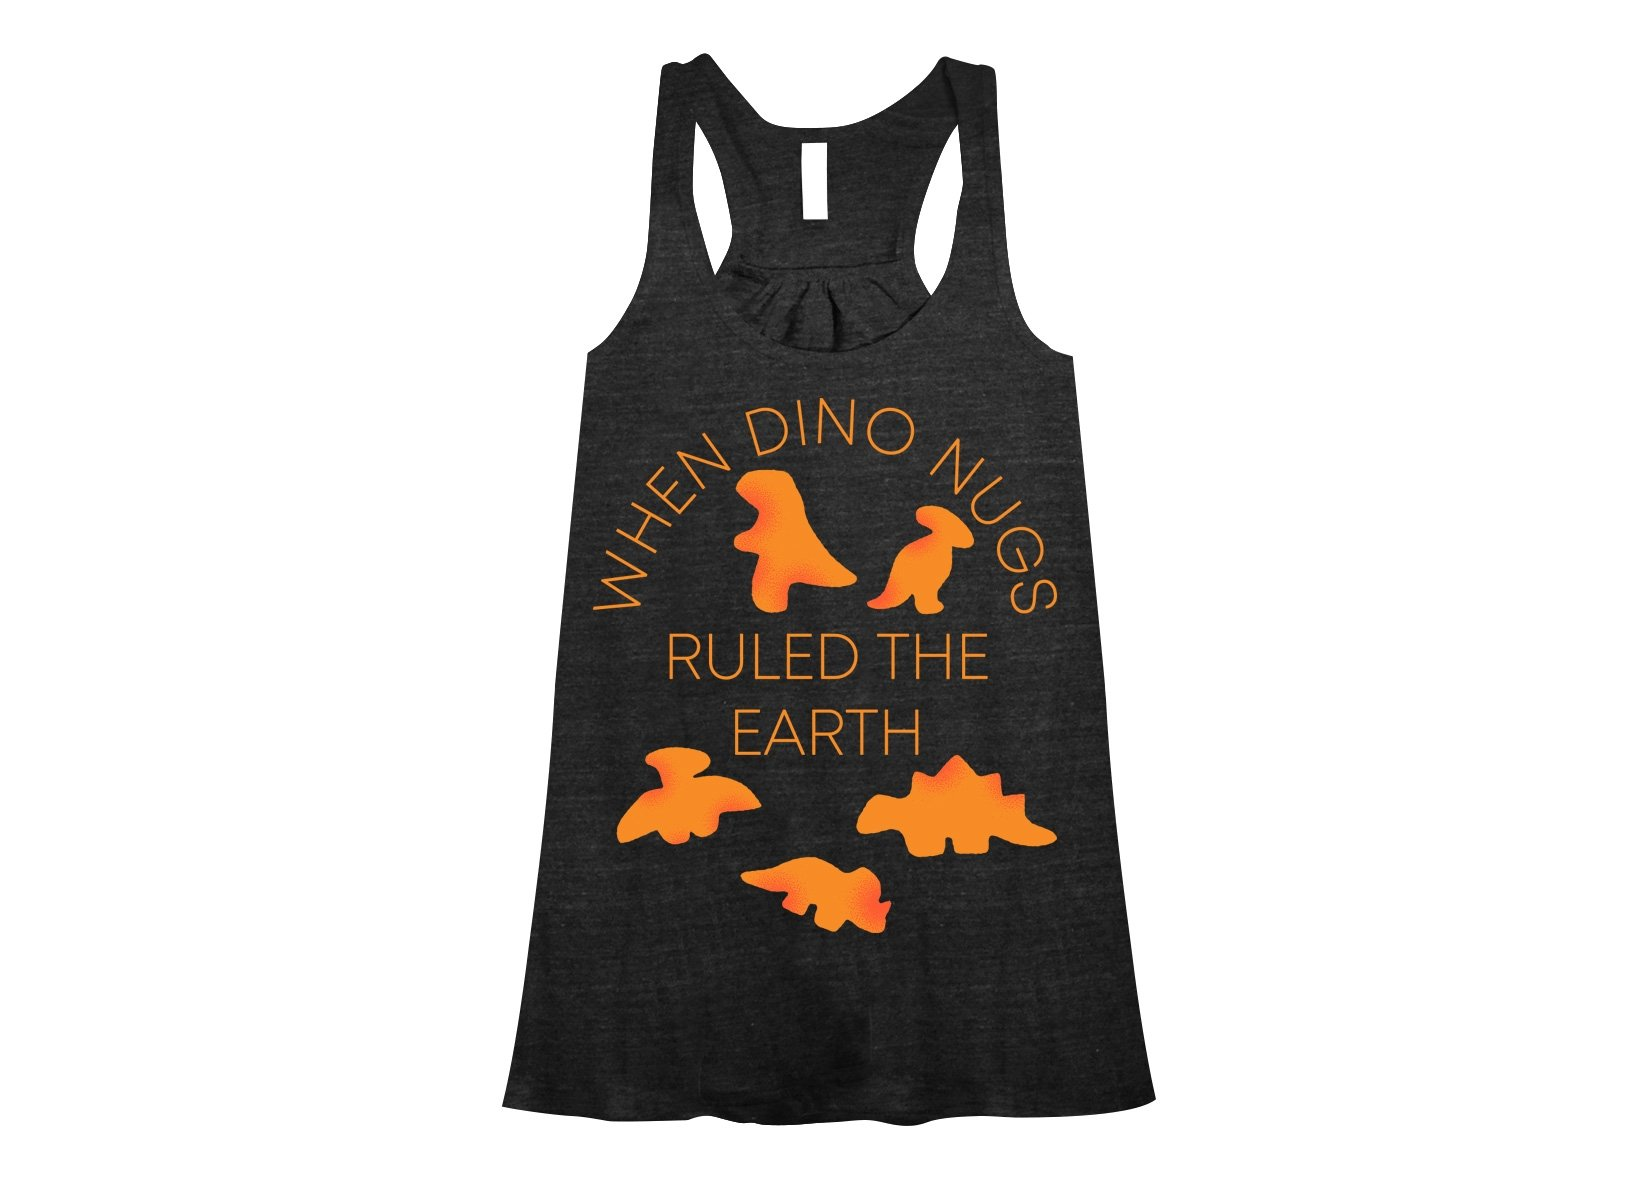 When Dino Nugs Ruled The Earth on Womens Tanks T-Shirt